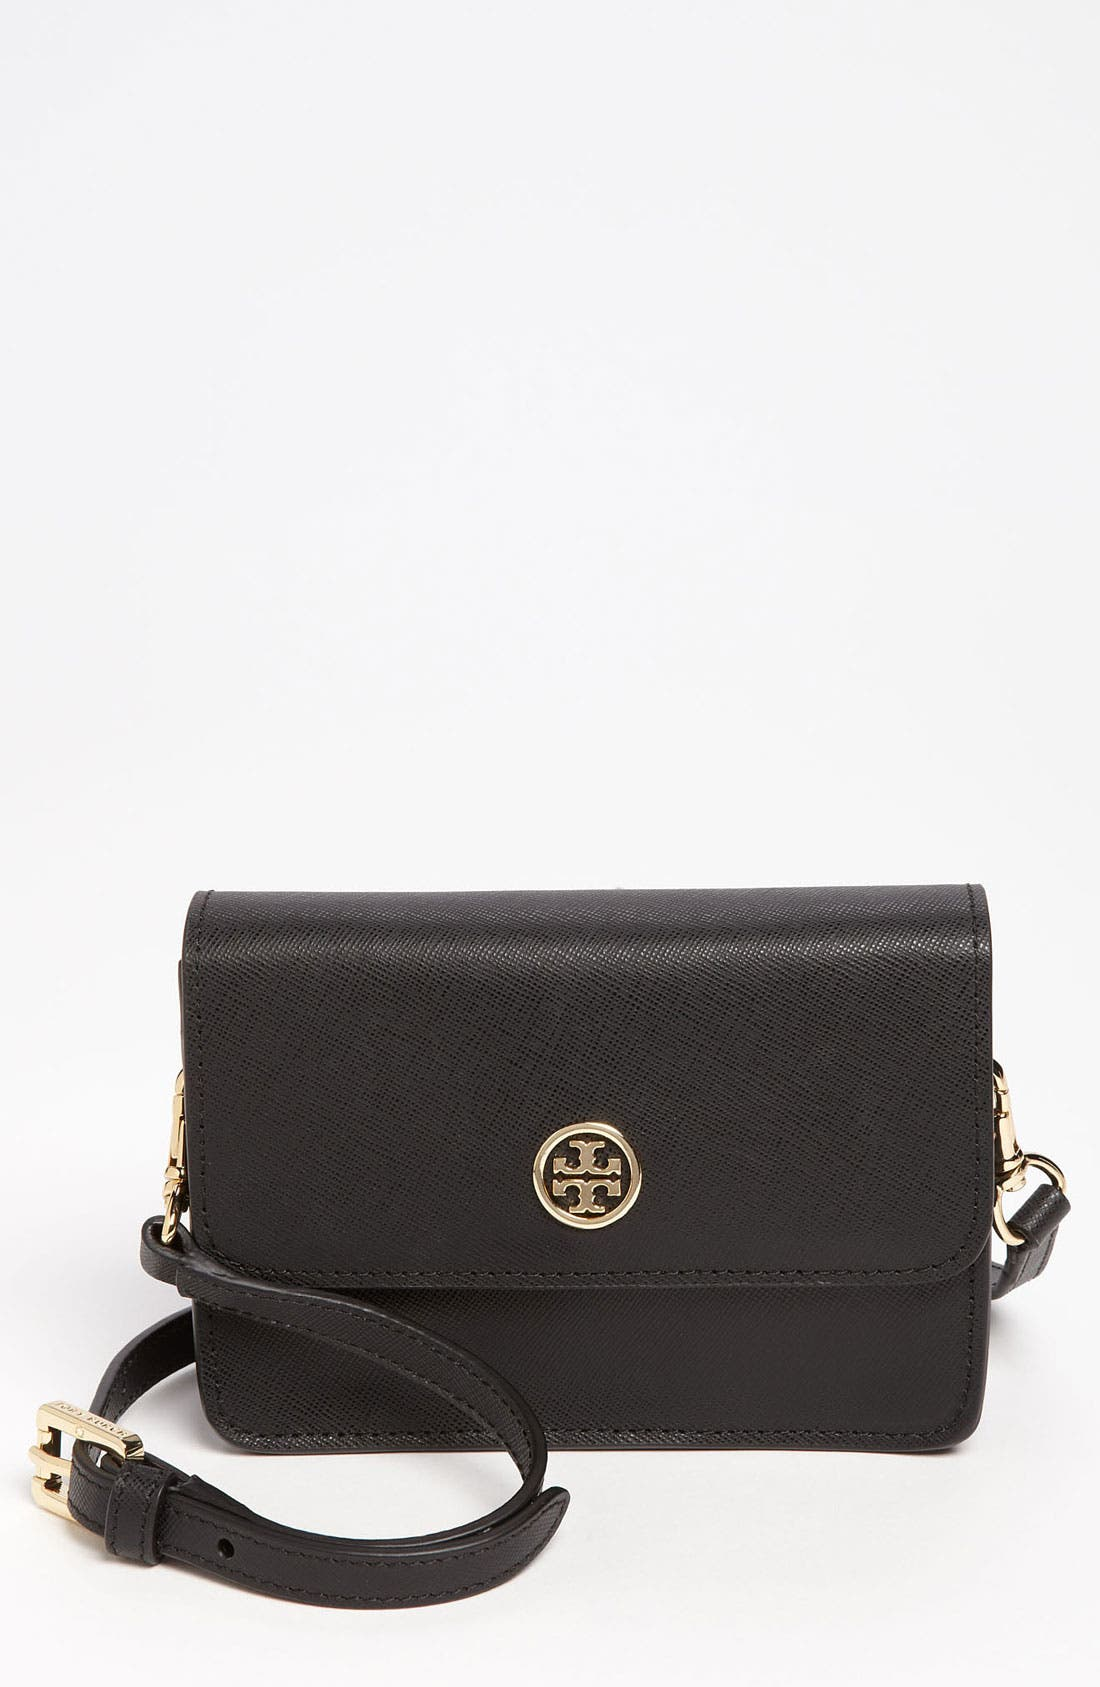 Main Image - Tory Burch 'Robinson - Mini' Leather Crossbody Bag